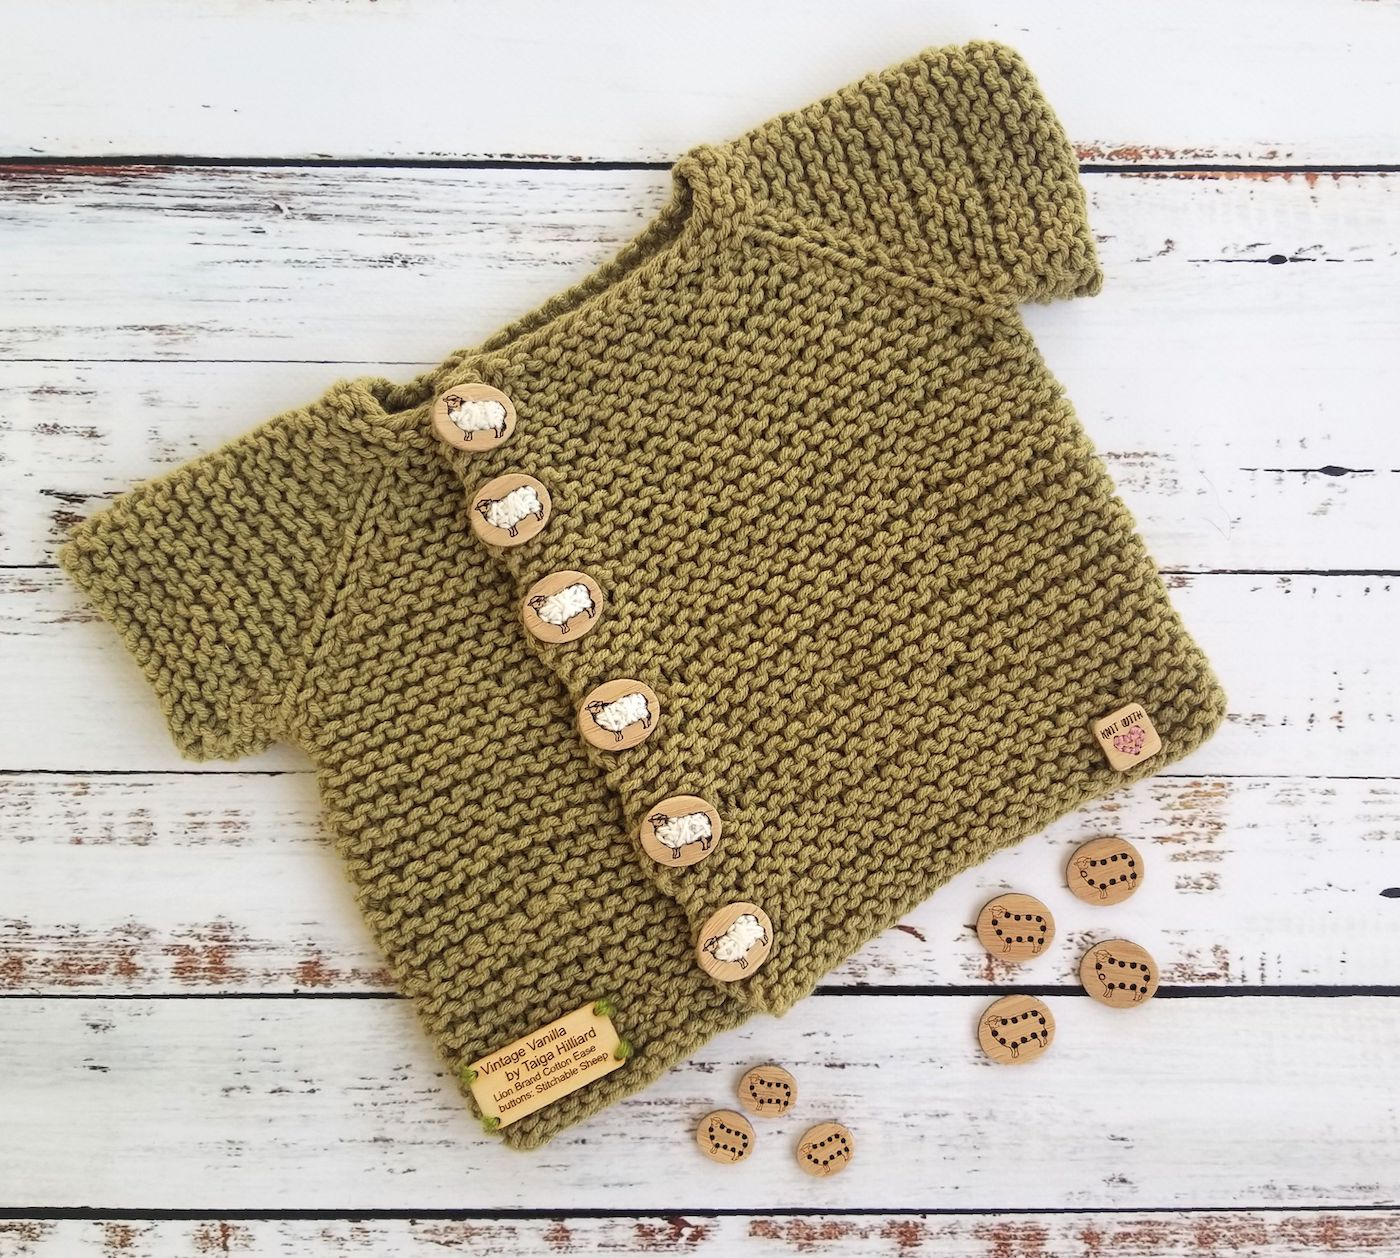 Knitted sweater with buttons